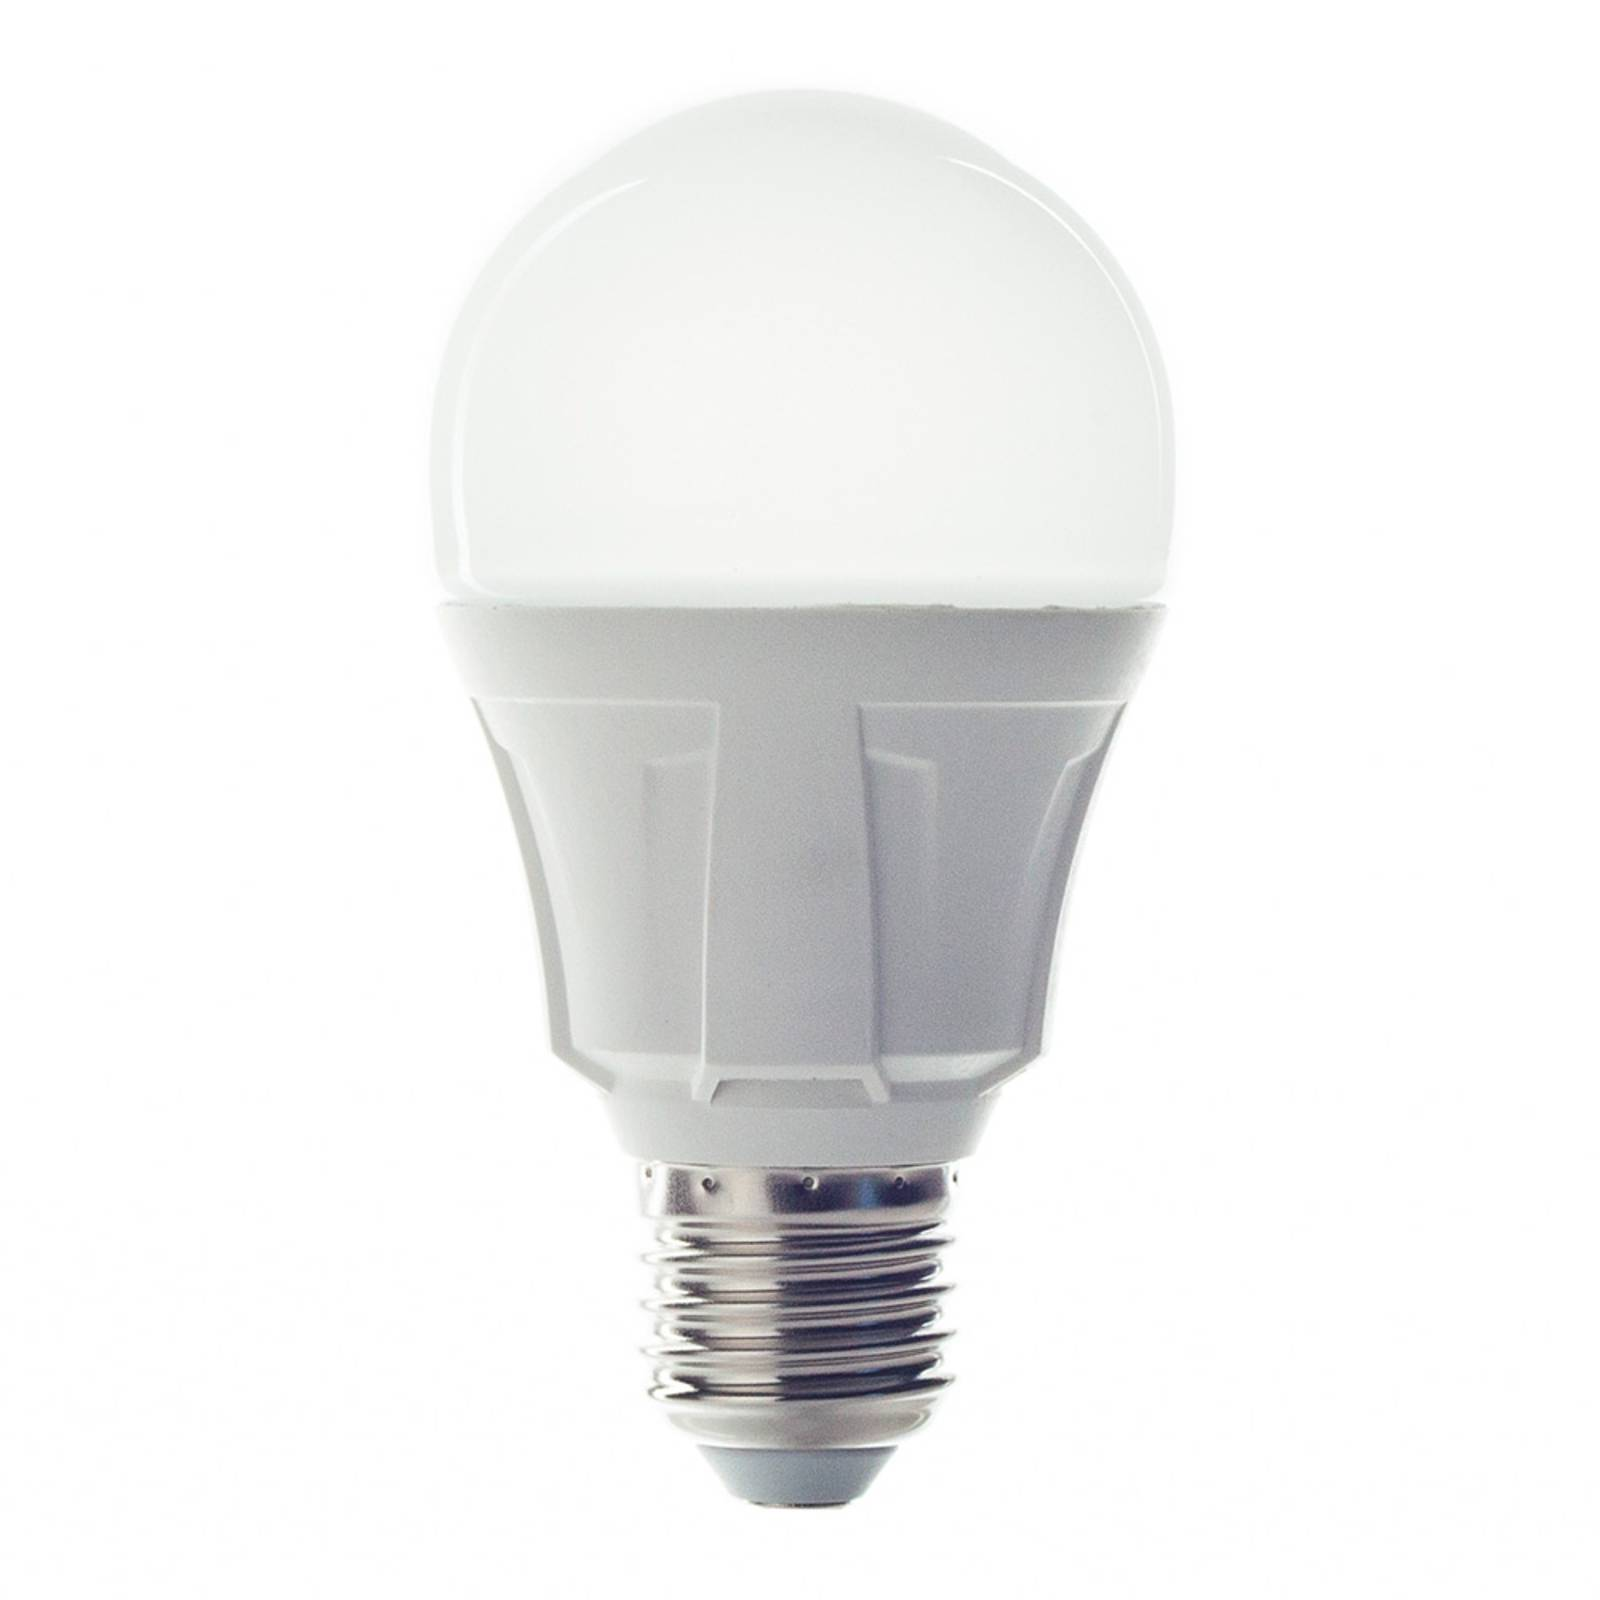 E27 9 W 830 LED bulb, warm white from Lindby